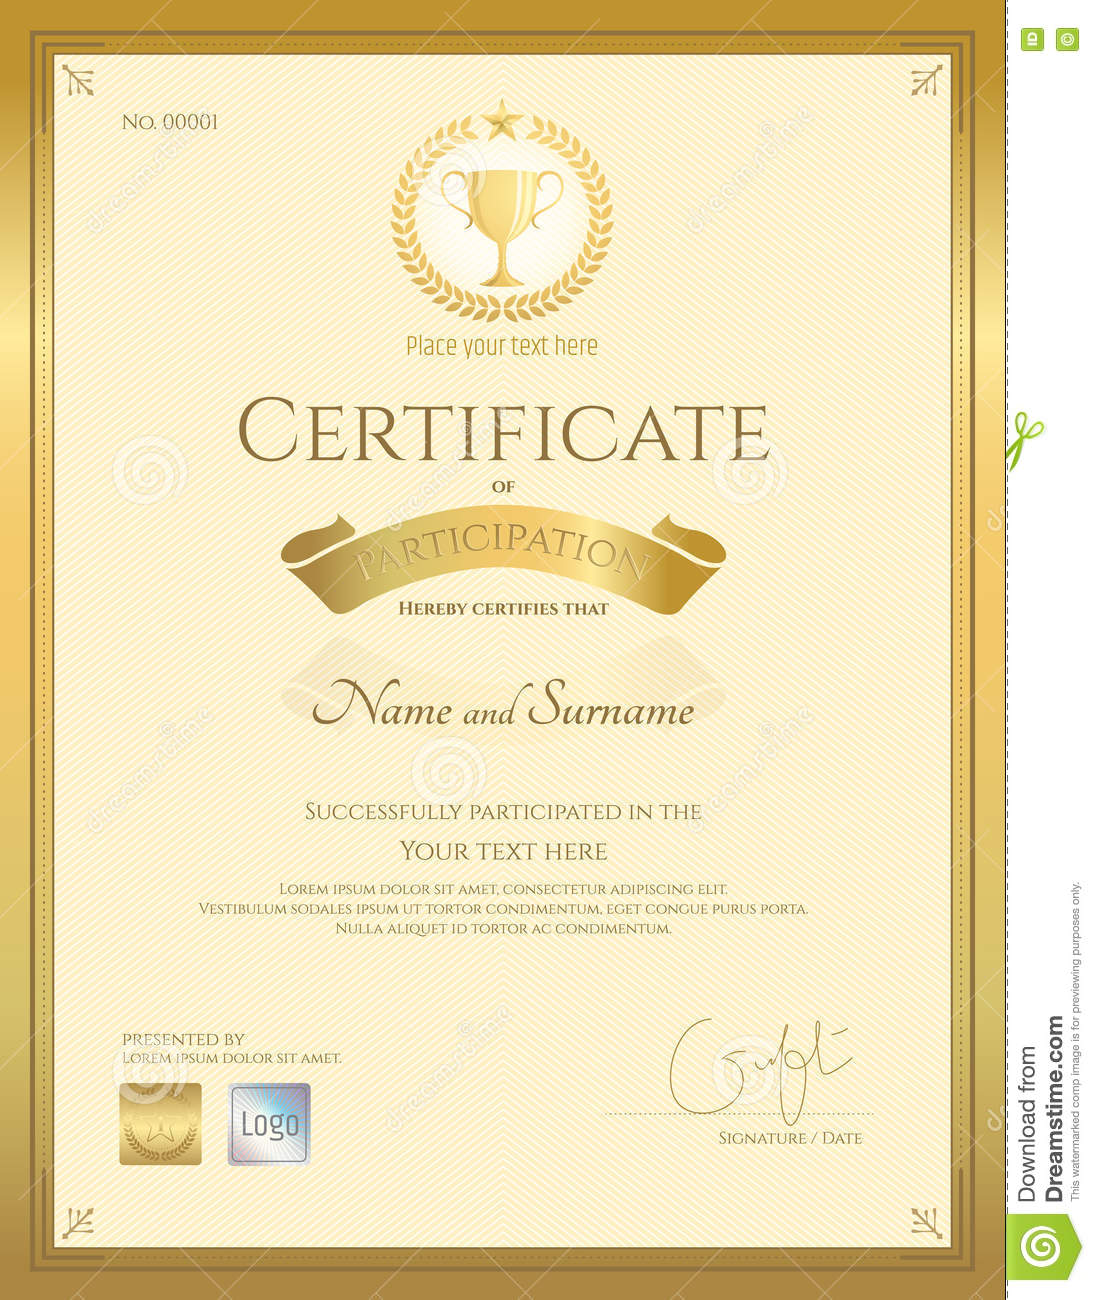 Certificate Of Participation Template In Gold Color  Award Paper Template